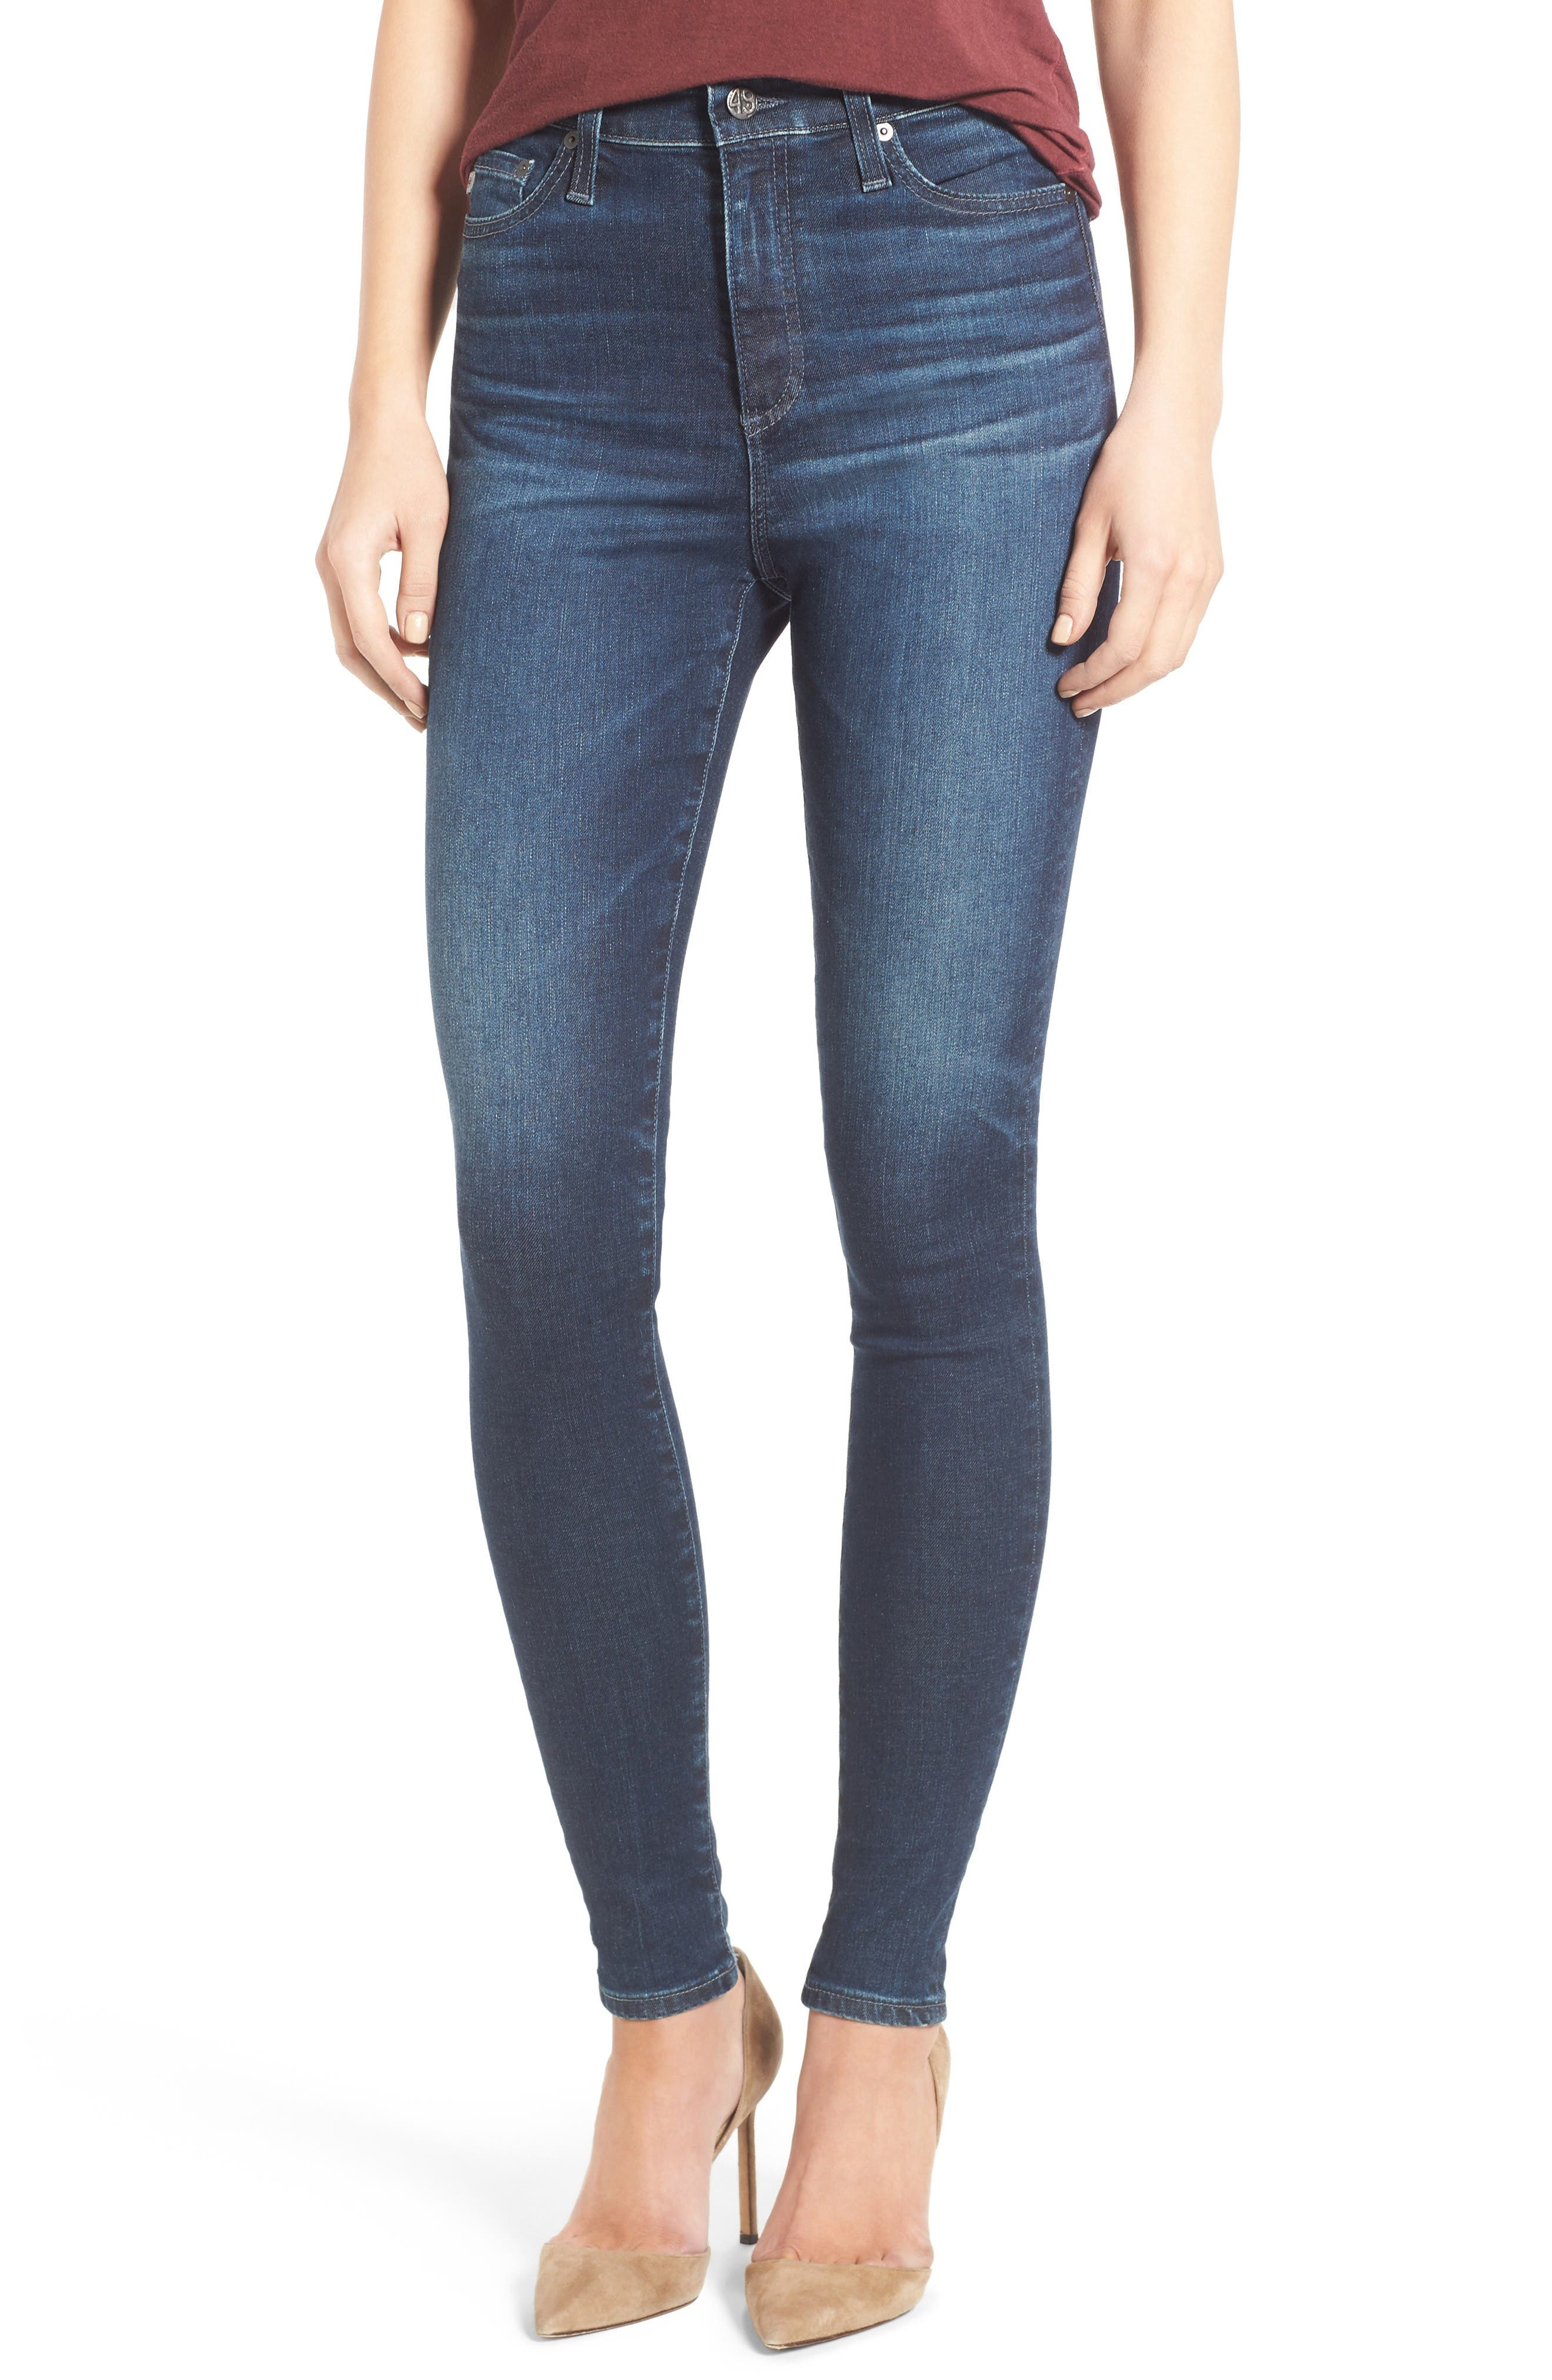 Mila High Rise Skinny Jeans,                             Main thumbnail 1, color,                             03Y Rendezvous